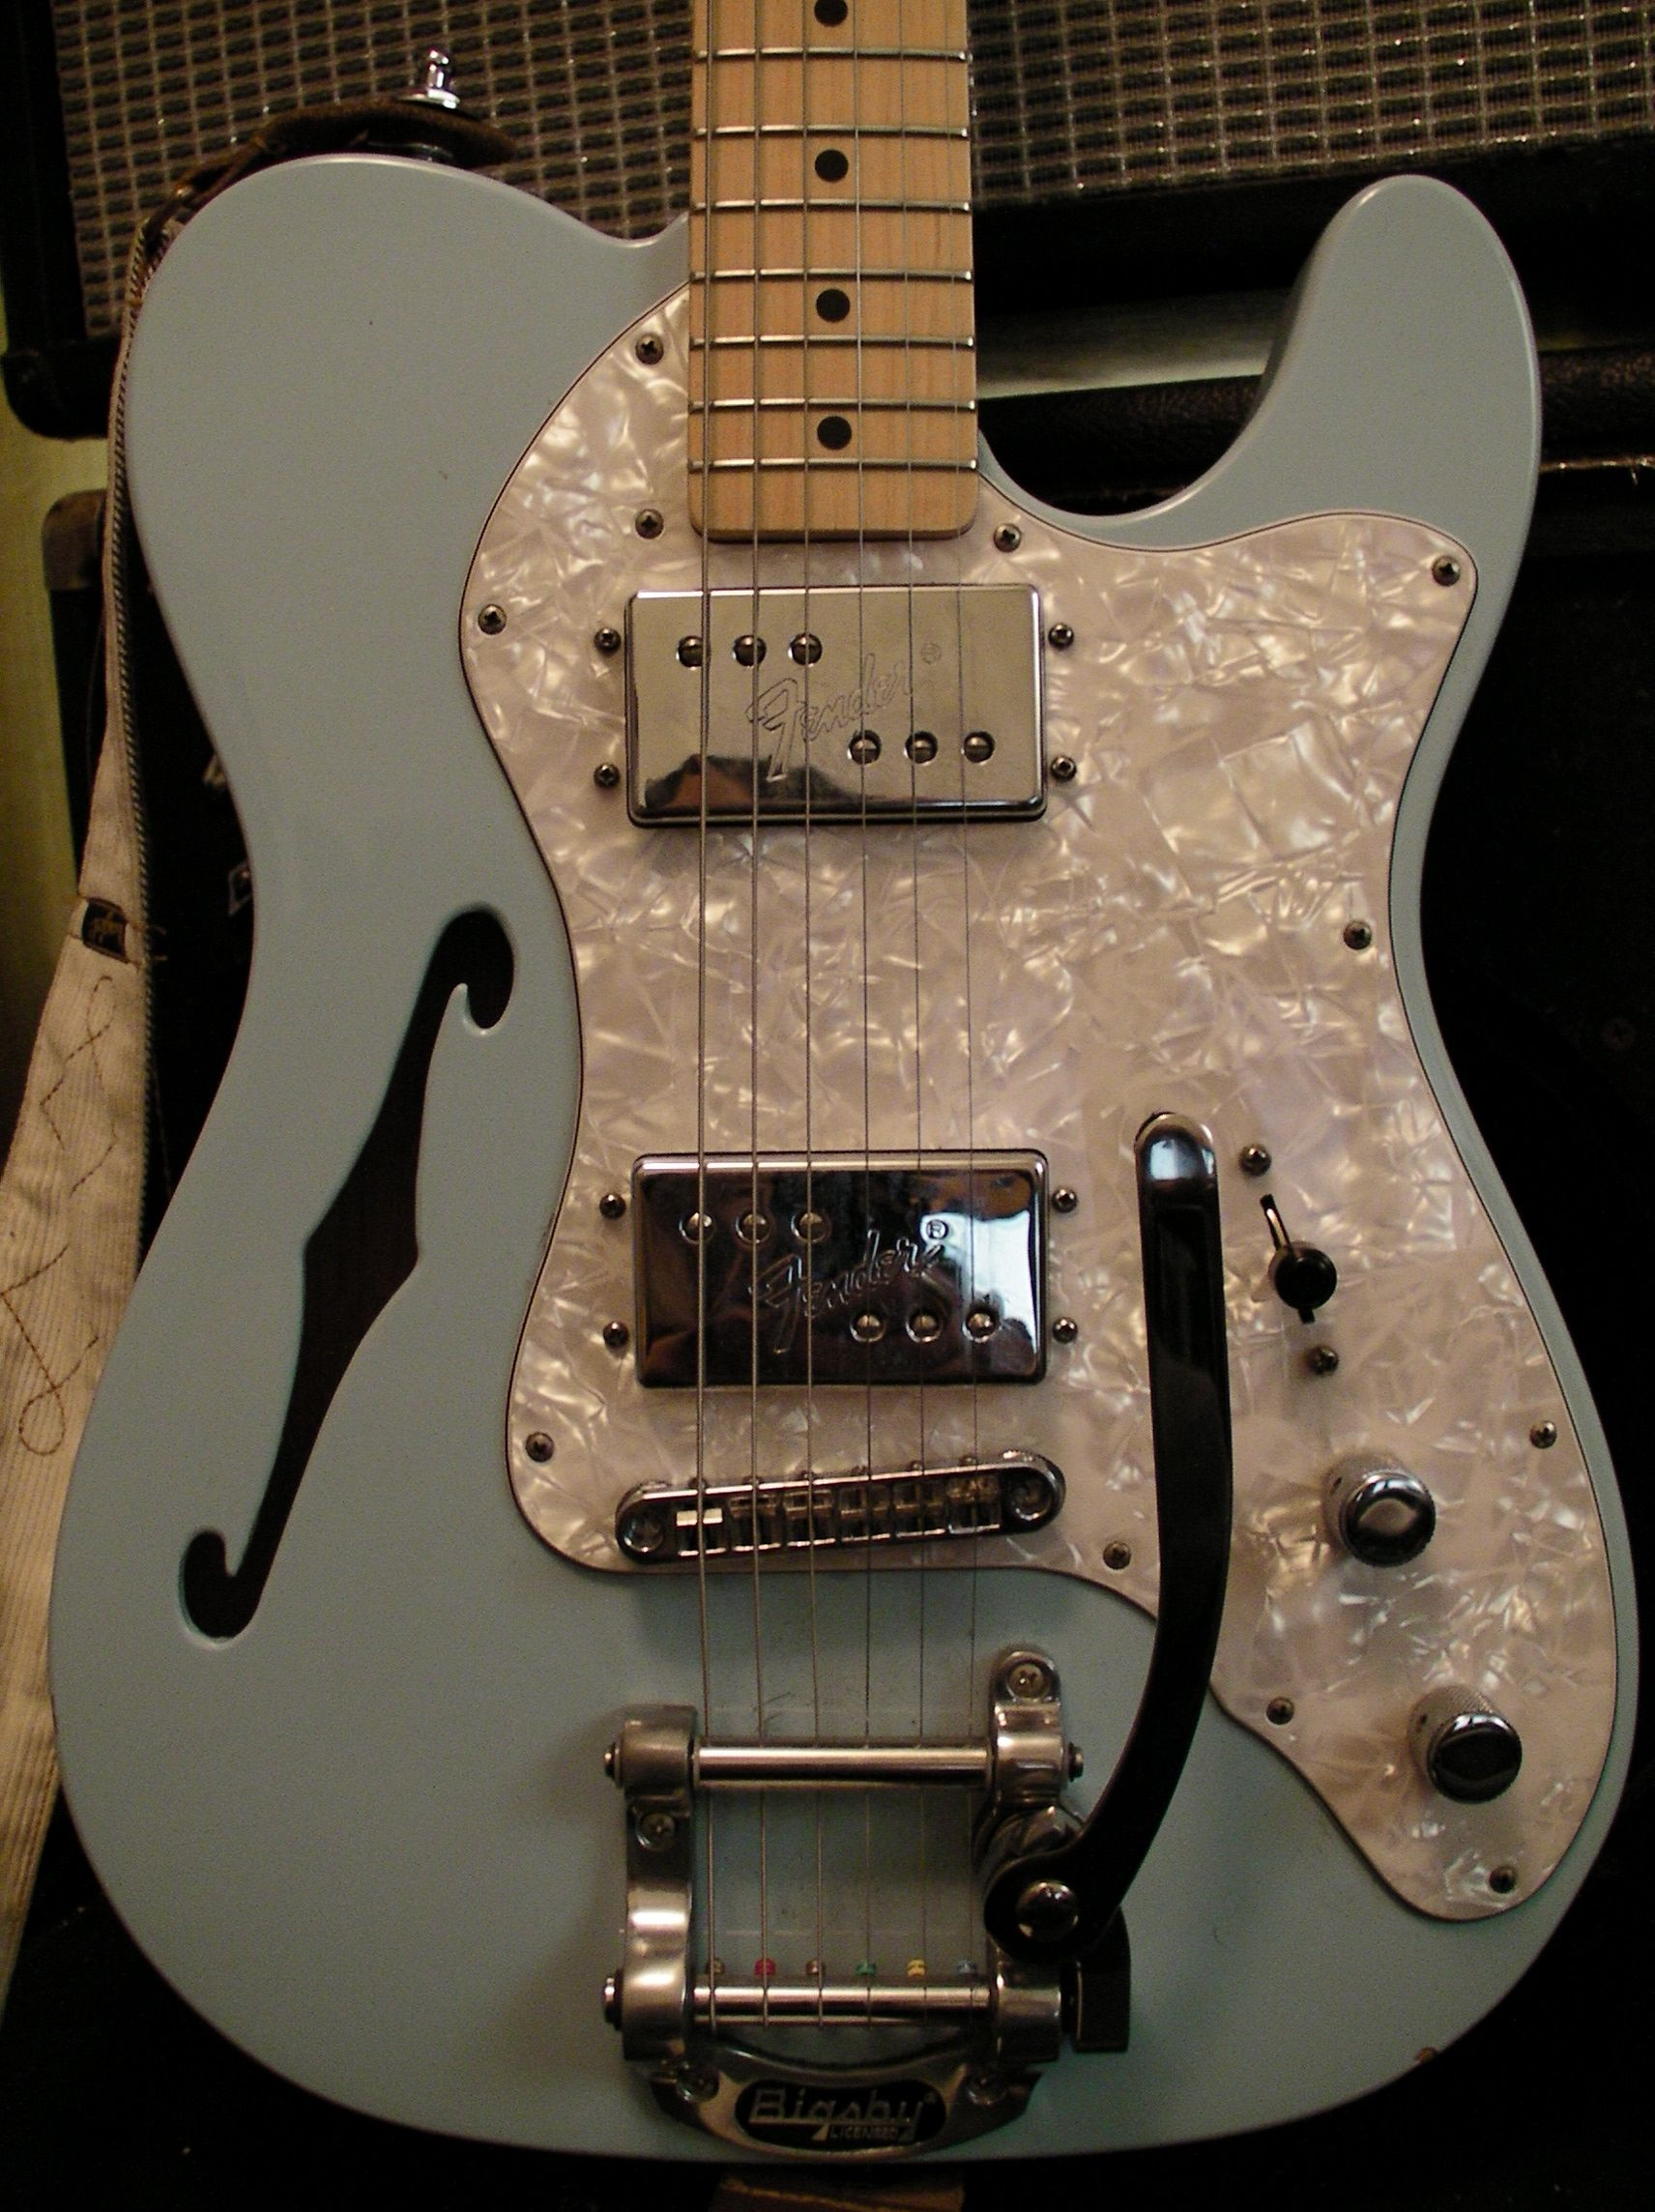 hight resolution of  72 telecaster thinline bigsby gorgeous surf blue or seafoam green lighter than a traditional